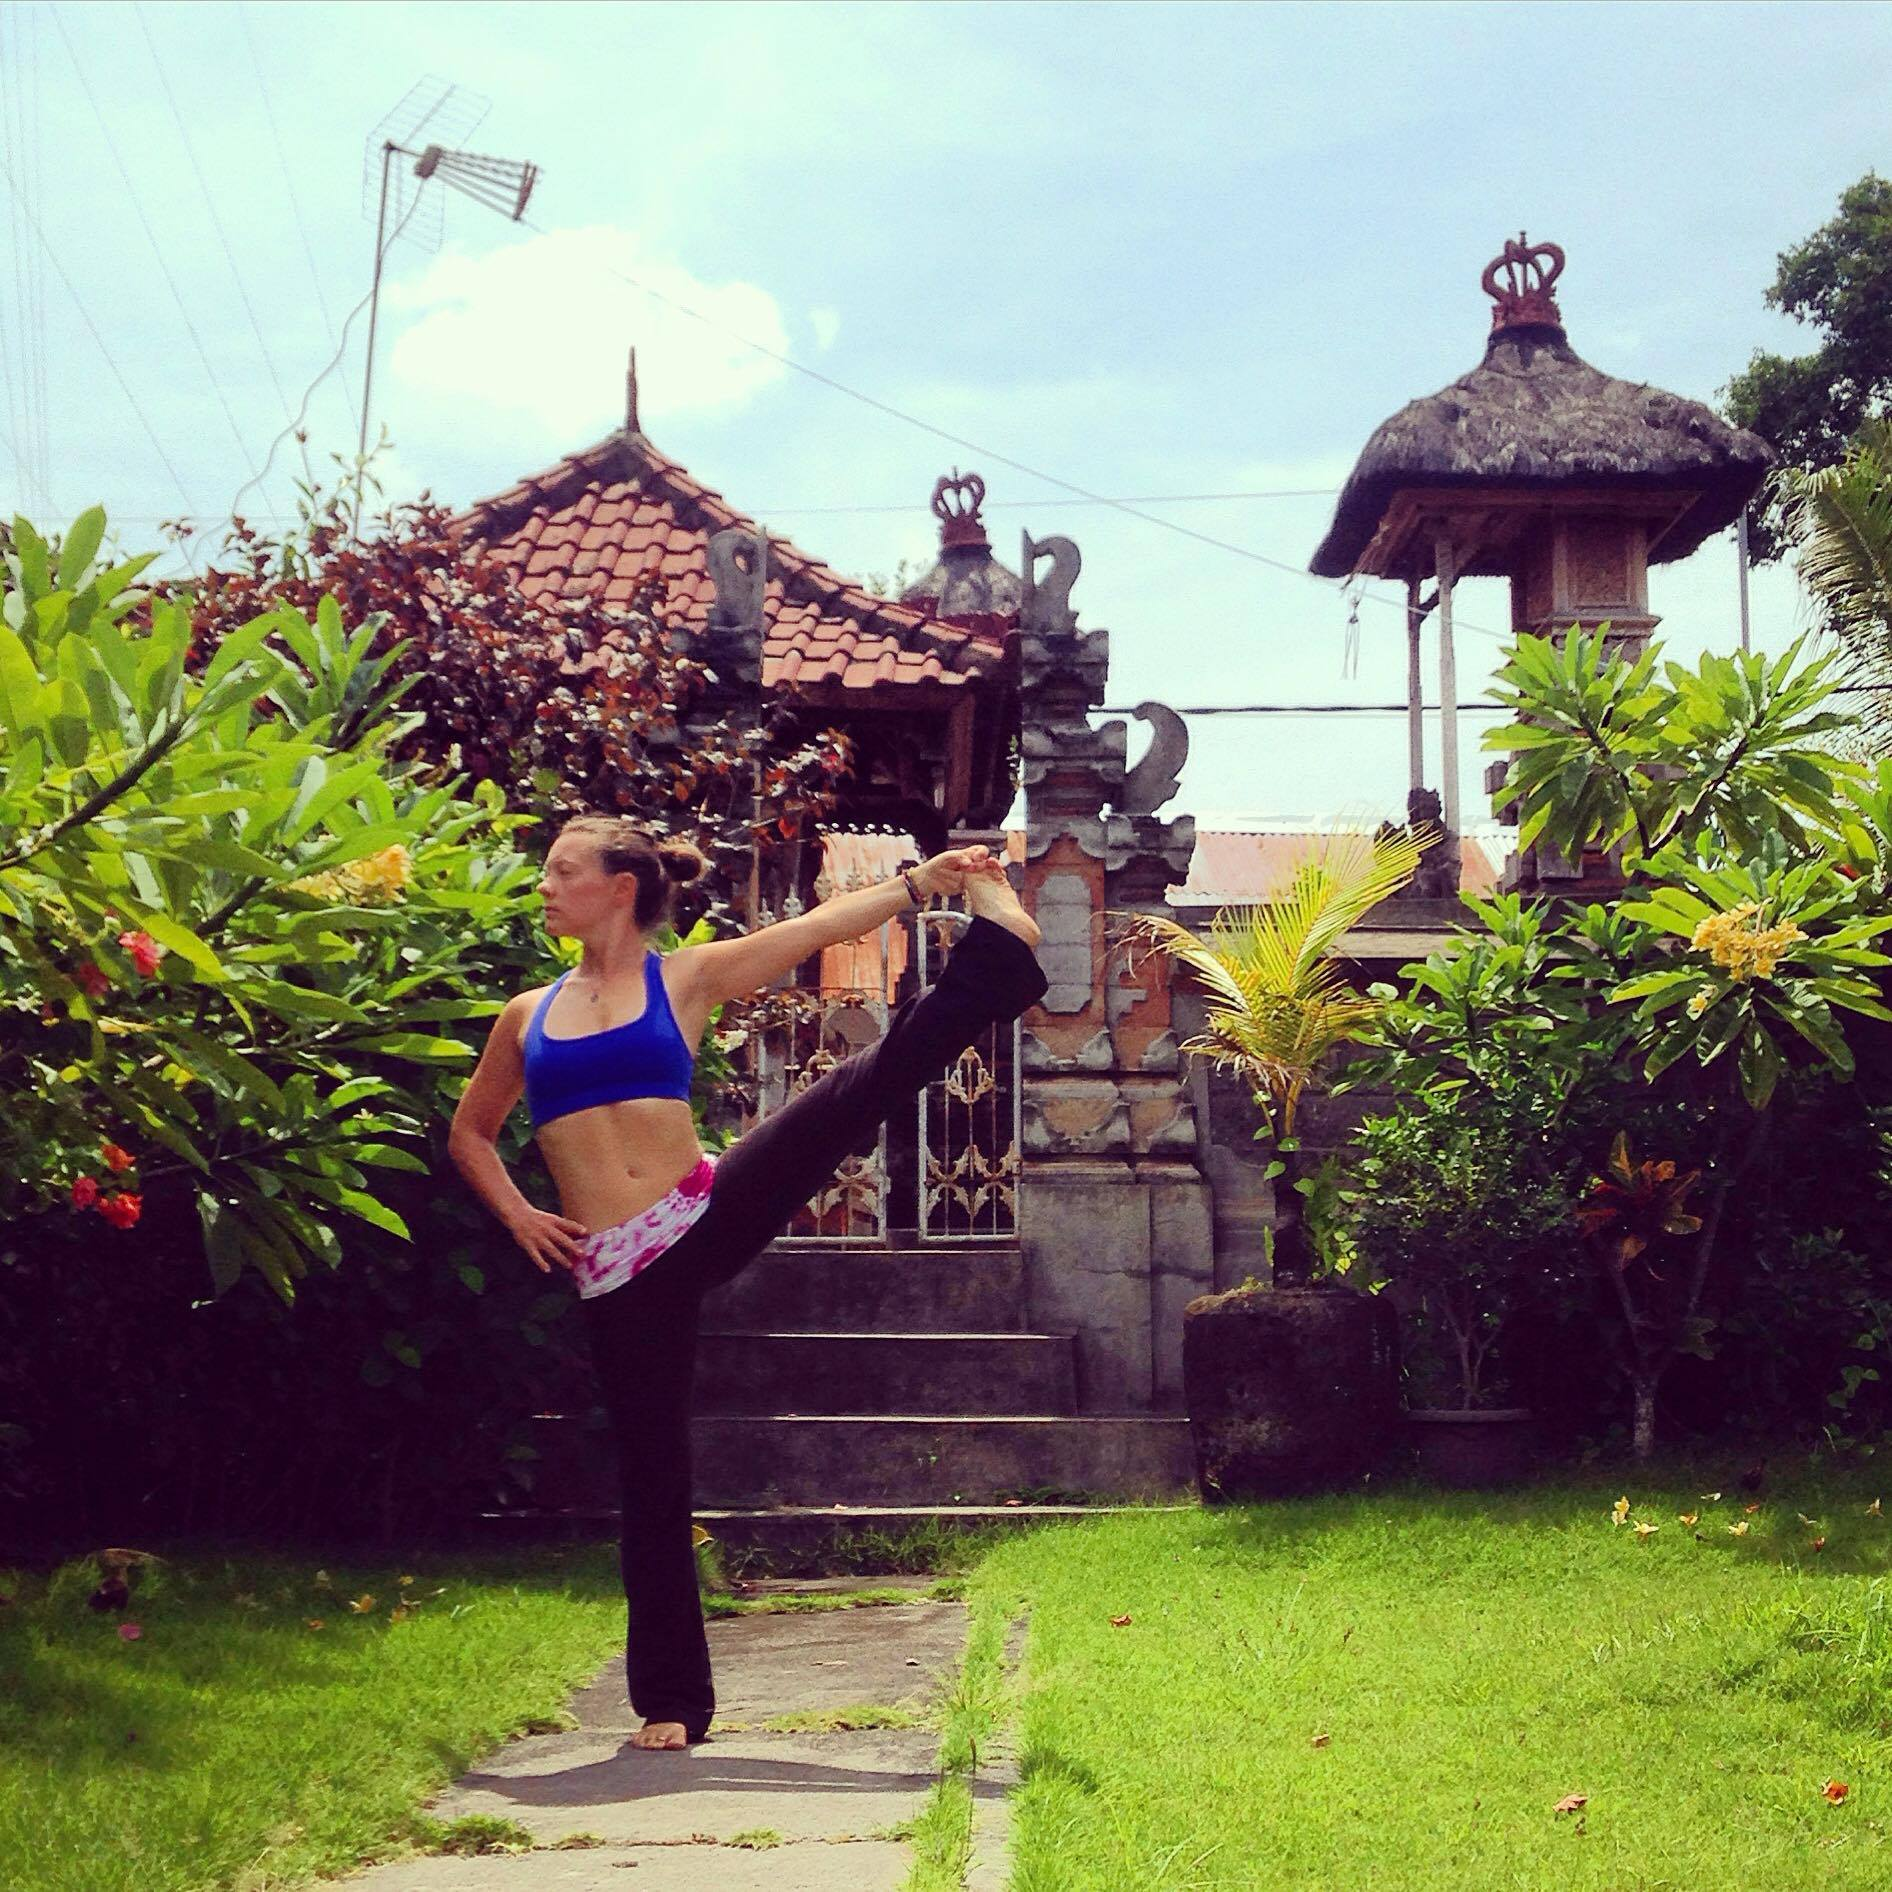 Bali diaries: feeling home and living in the moment